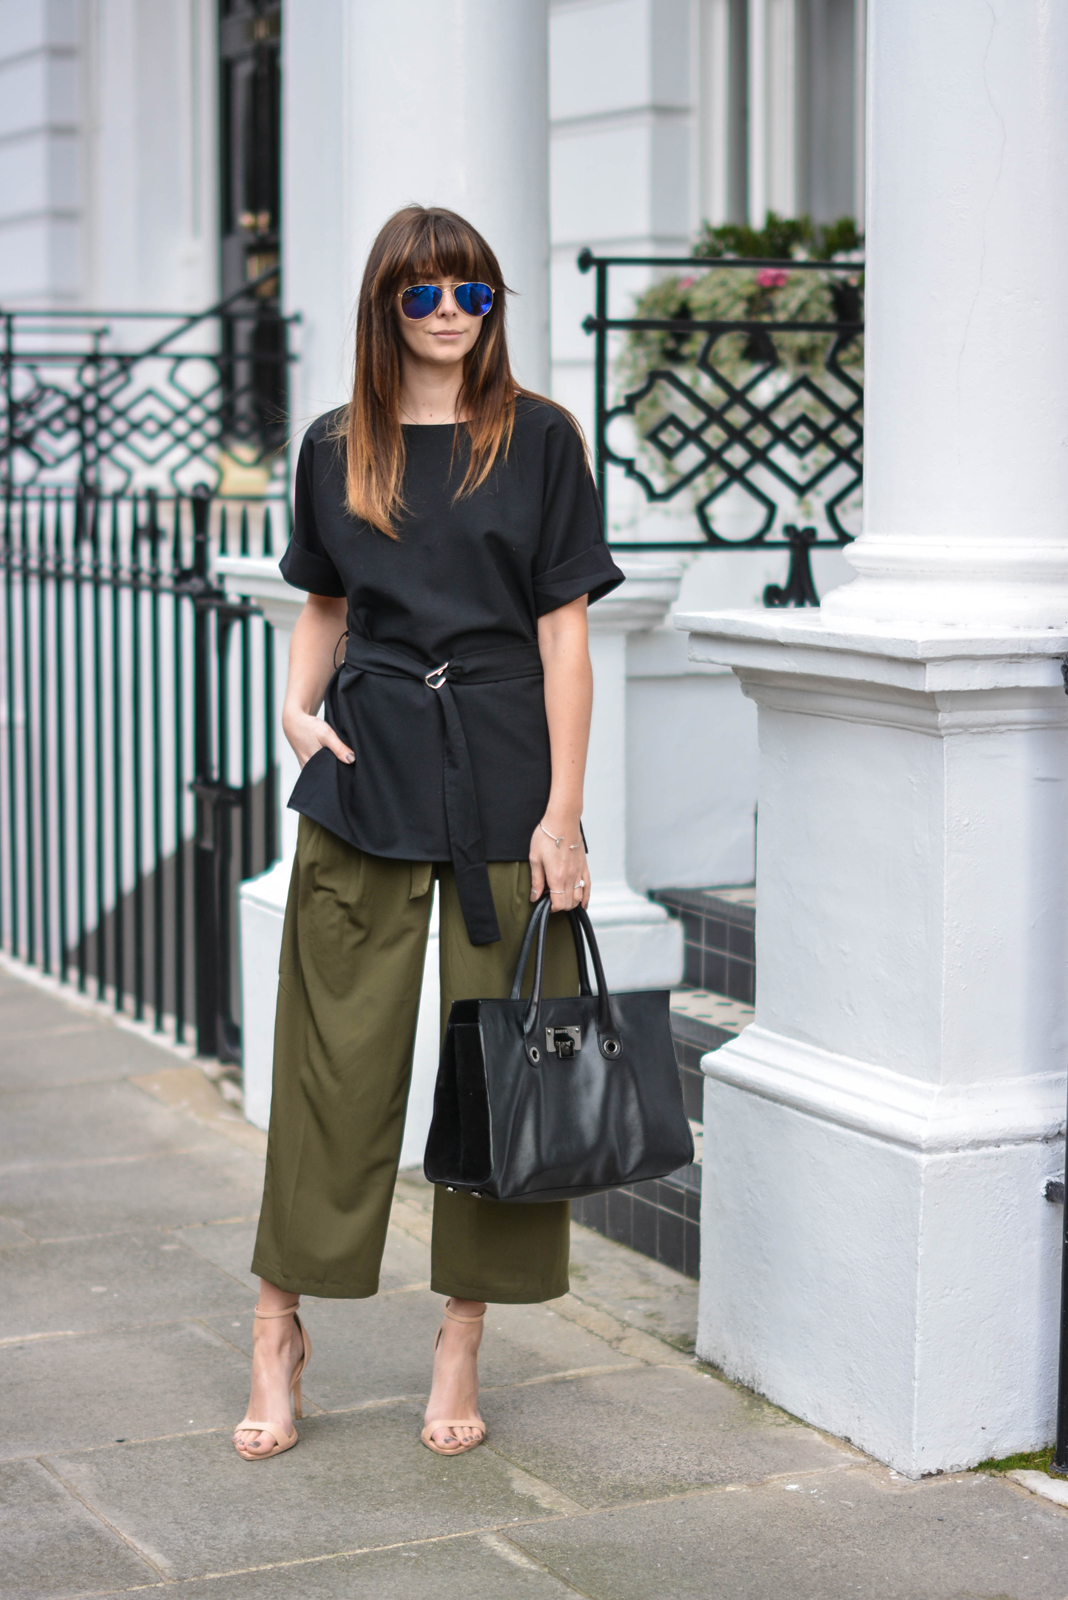 EJSTYLE - Emma Hill, London Street style, SS15, LFW, asos Khaki cropped trousers, Jimmy Choo Riley Bag, ASOS d ring black t shirt top, nude strappy sandals, ray ban sunglasses, OOTD